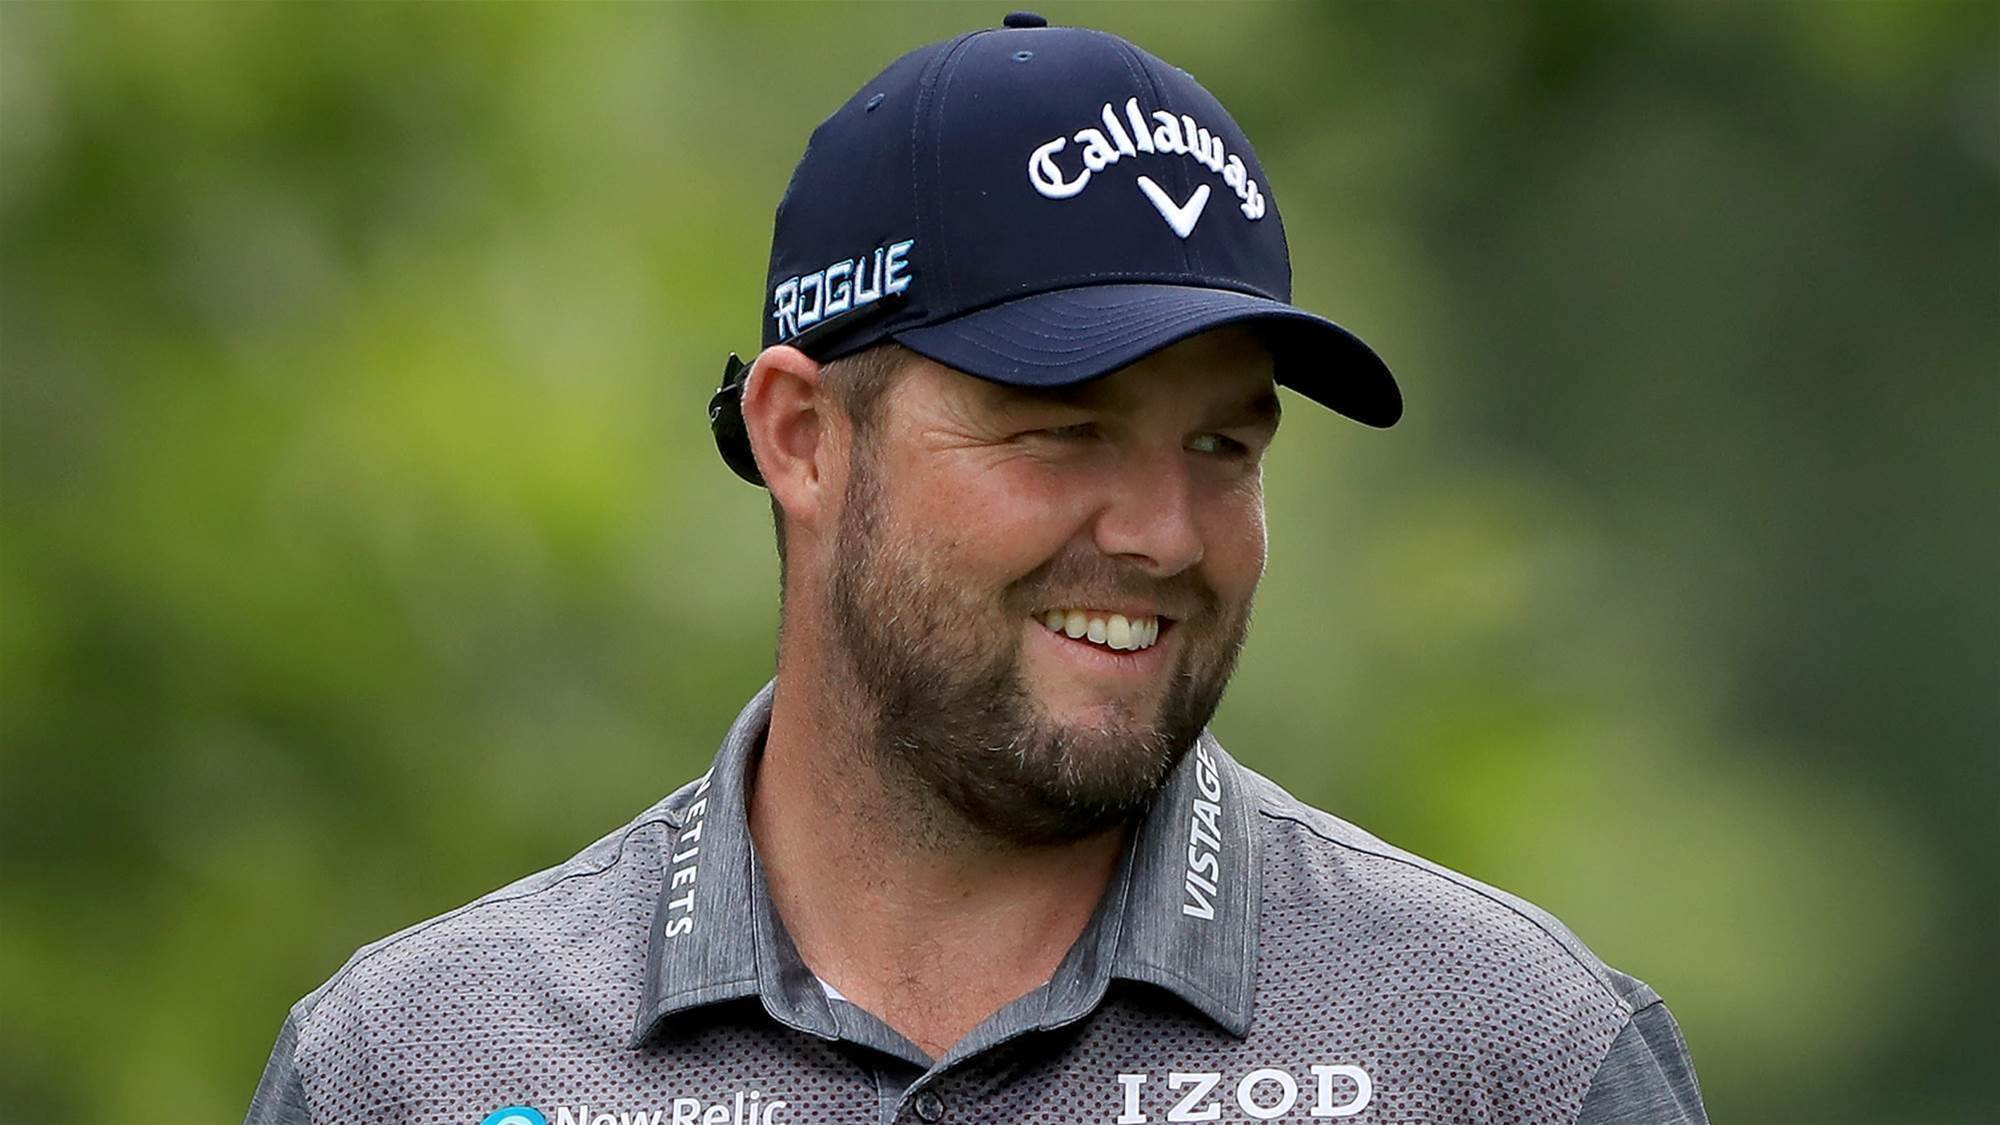 Leishman gives back ahead of Tour Championship